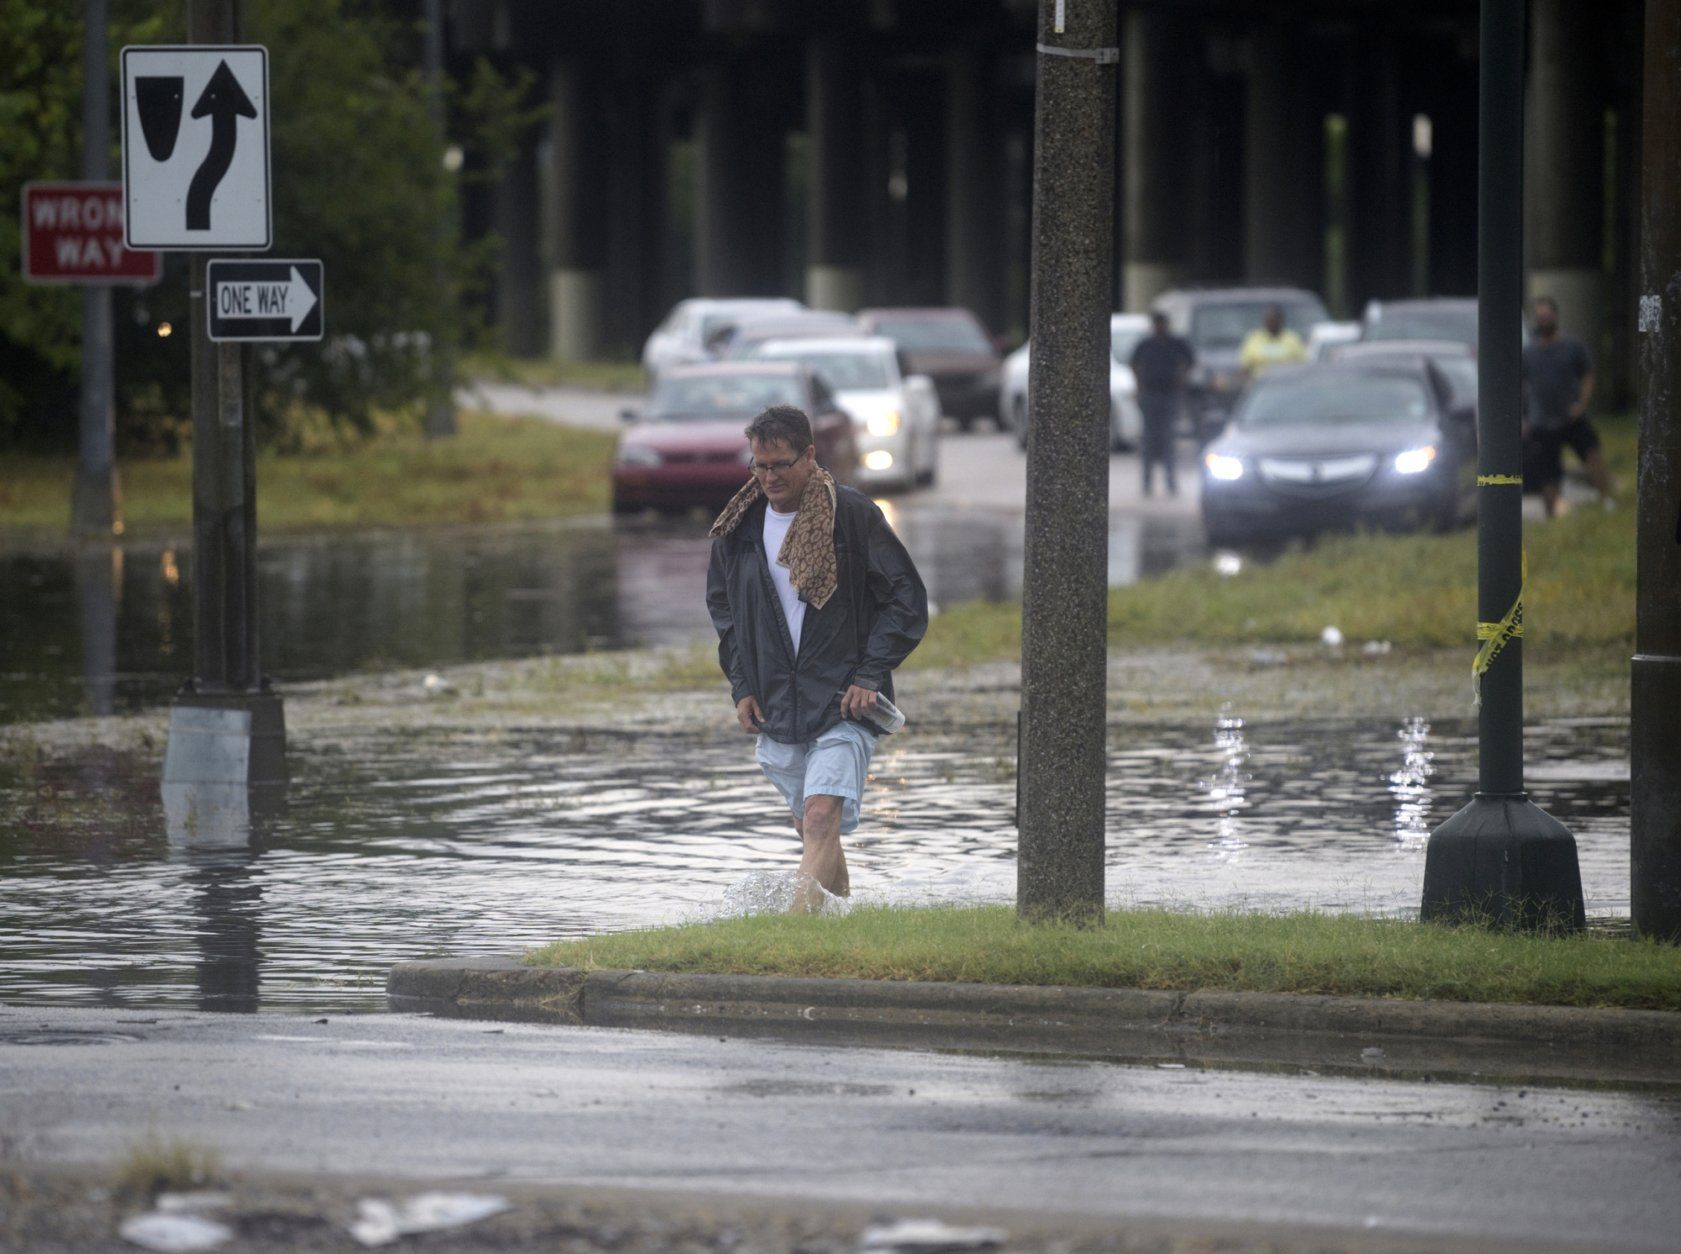 A man walks through standing water at the intersection at Franklin Ave. and 610 in New Orleans after a severe thunderstorm caused street flooding Wednesday, July 10, 2019.  (Max Becherer/The Advocate via AP)